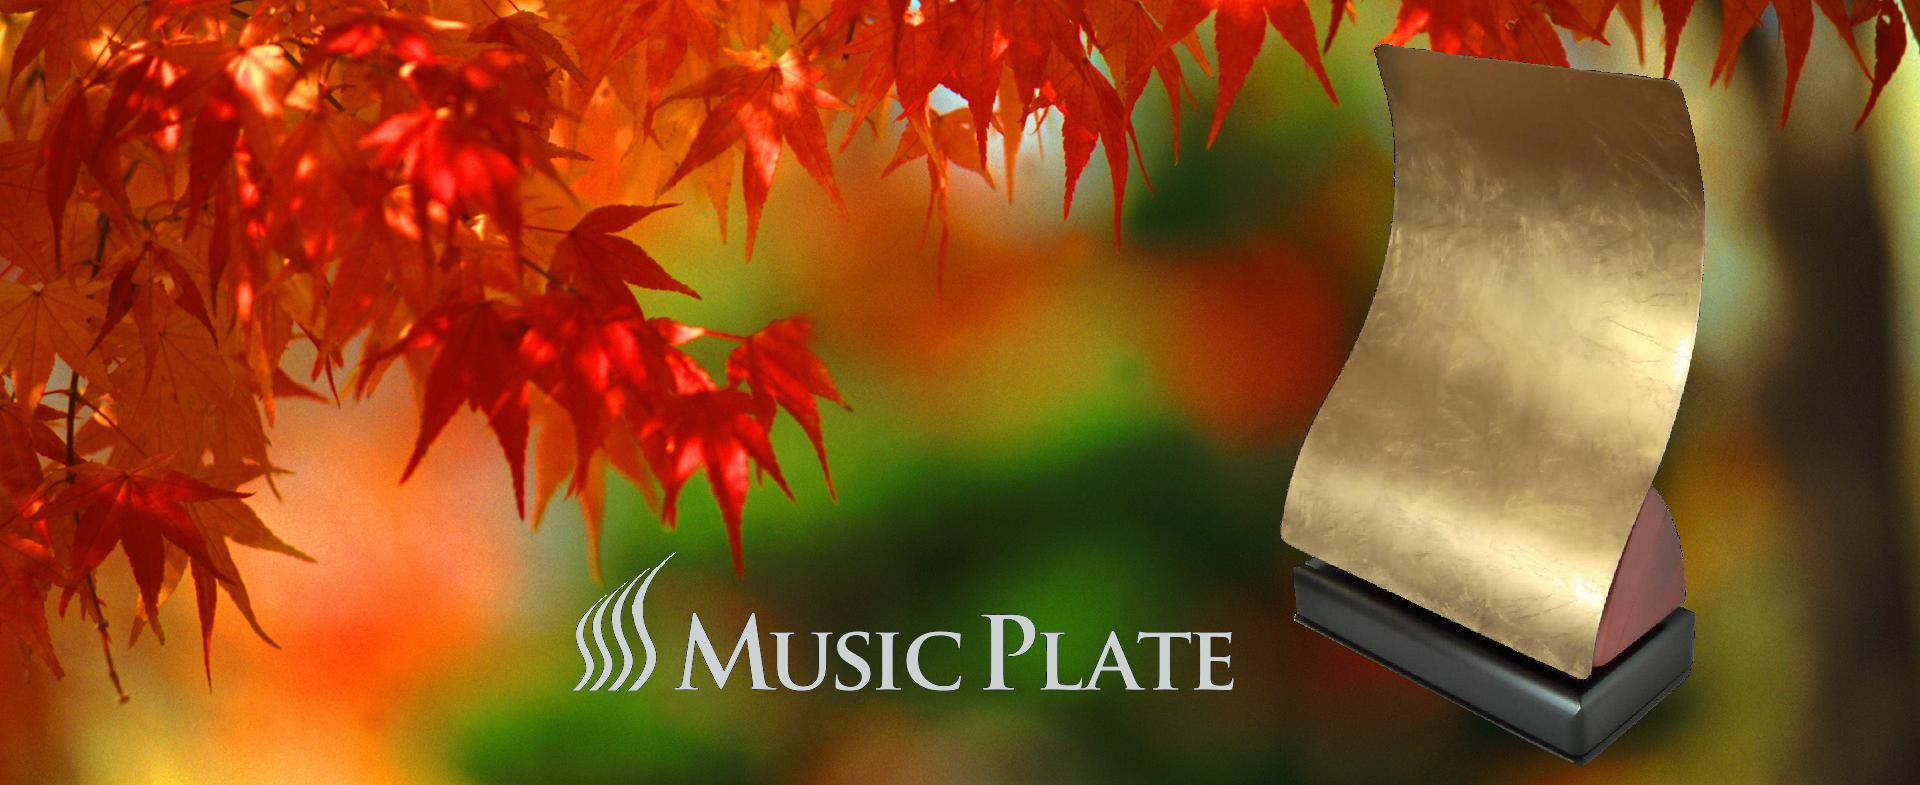 Music Plate TS-1081 gold